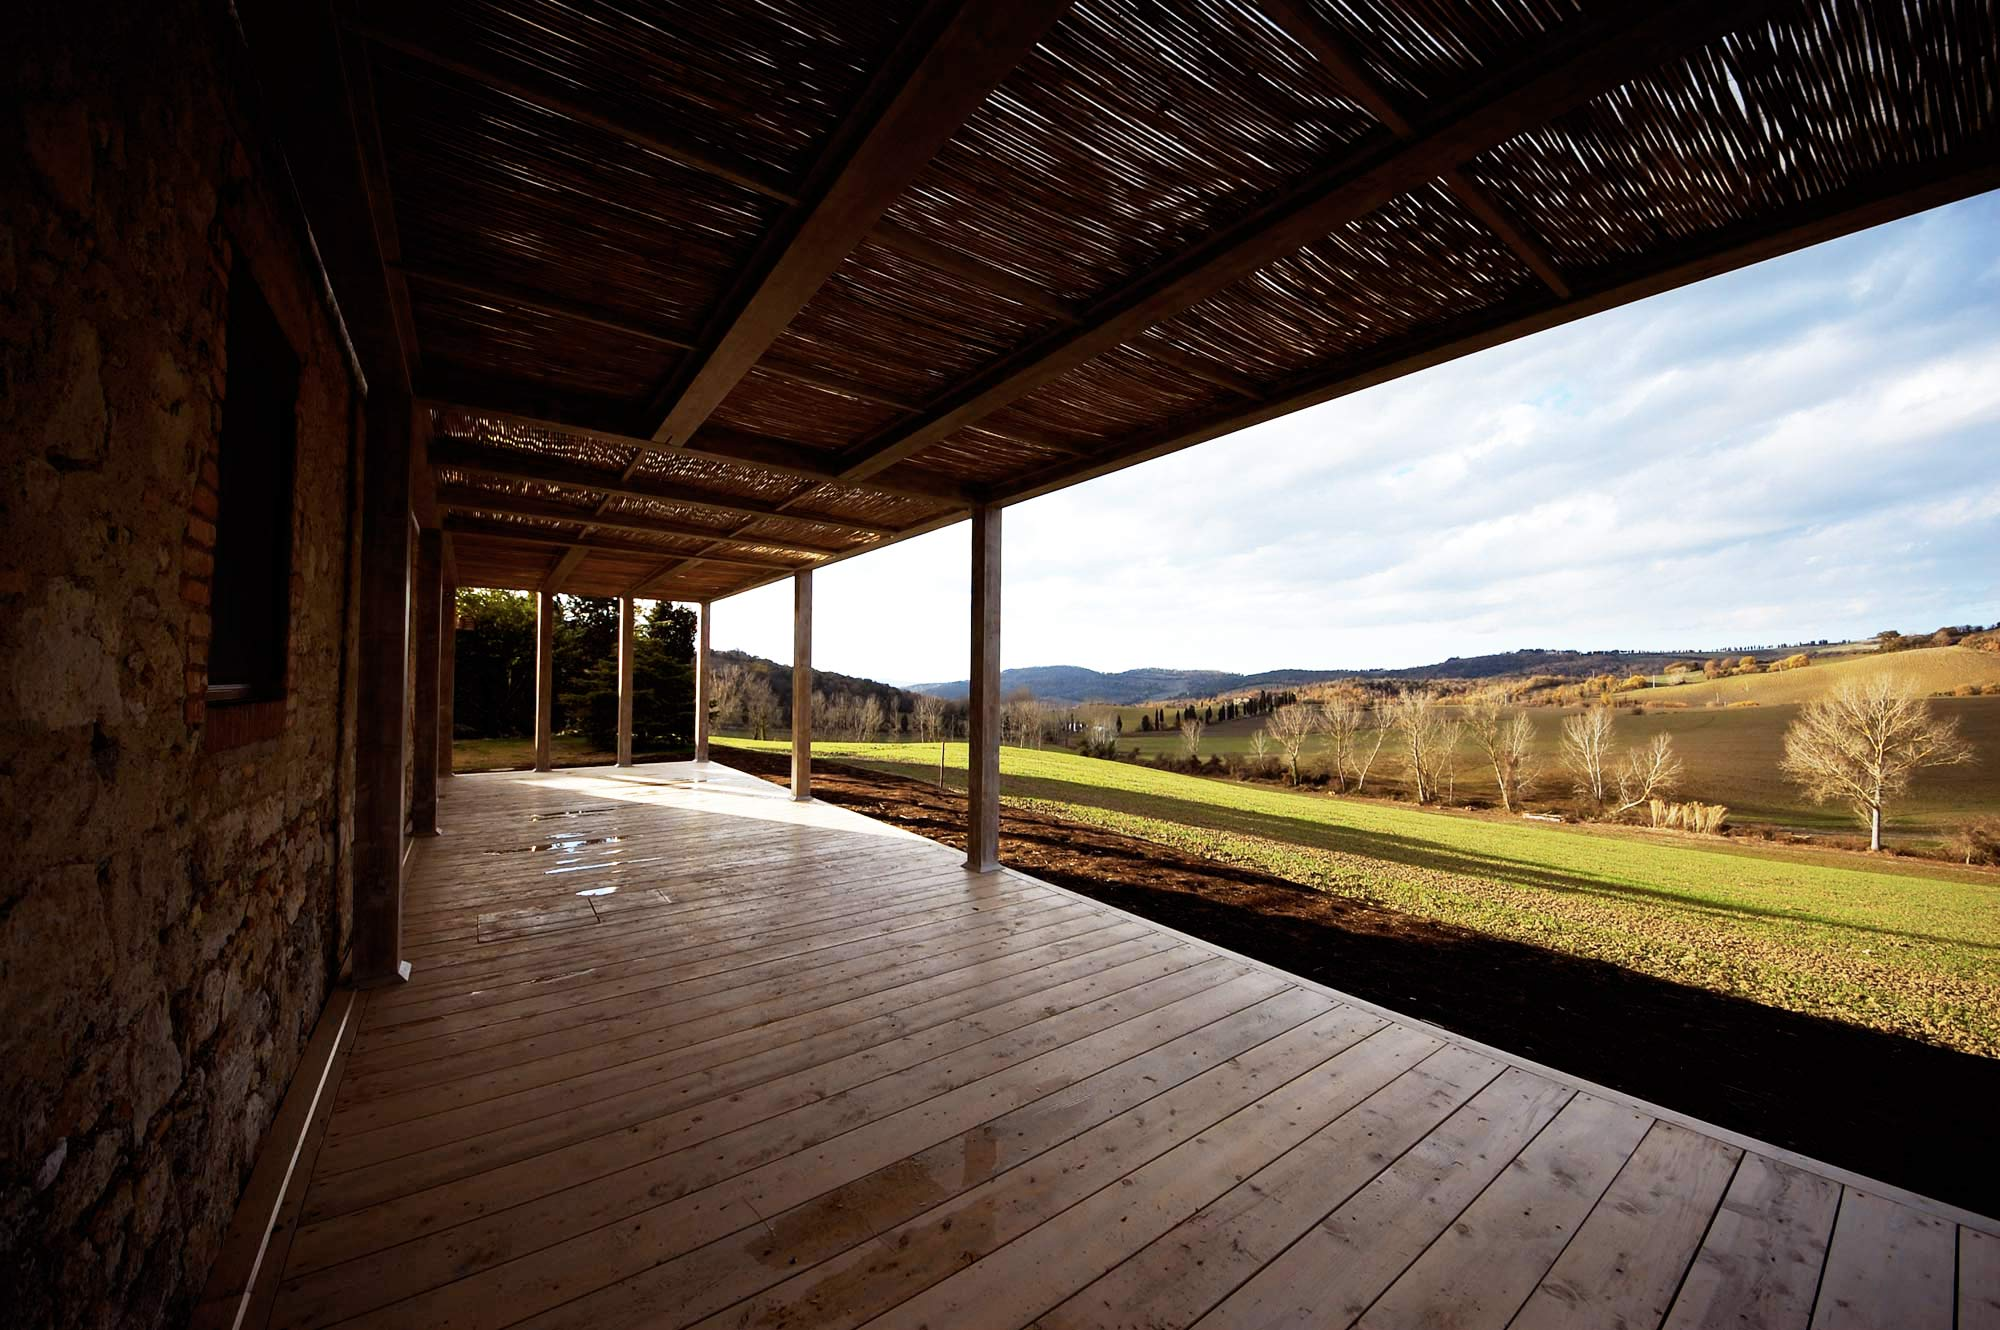 pergola of the tuscan farmhouse